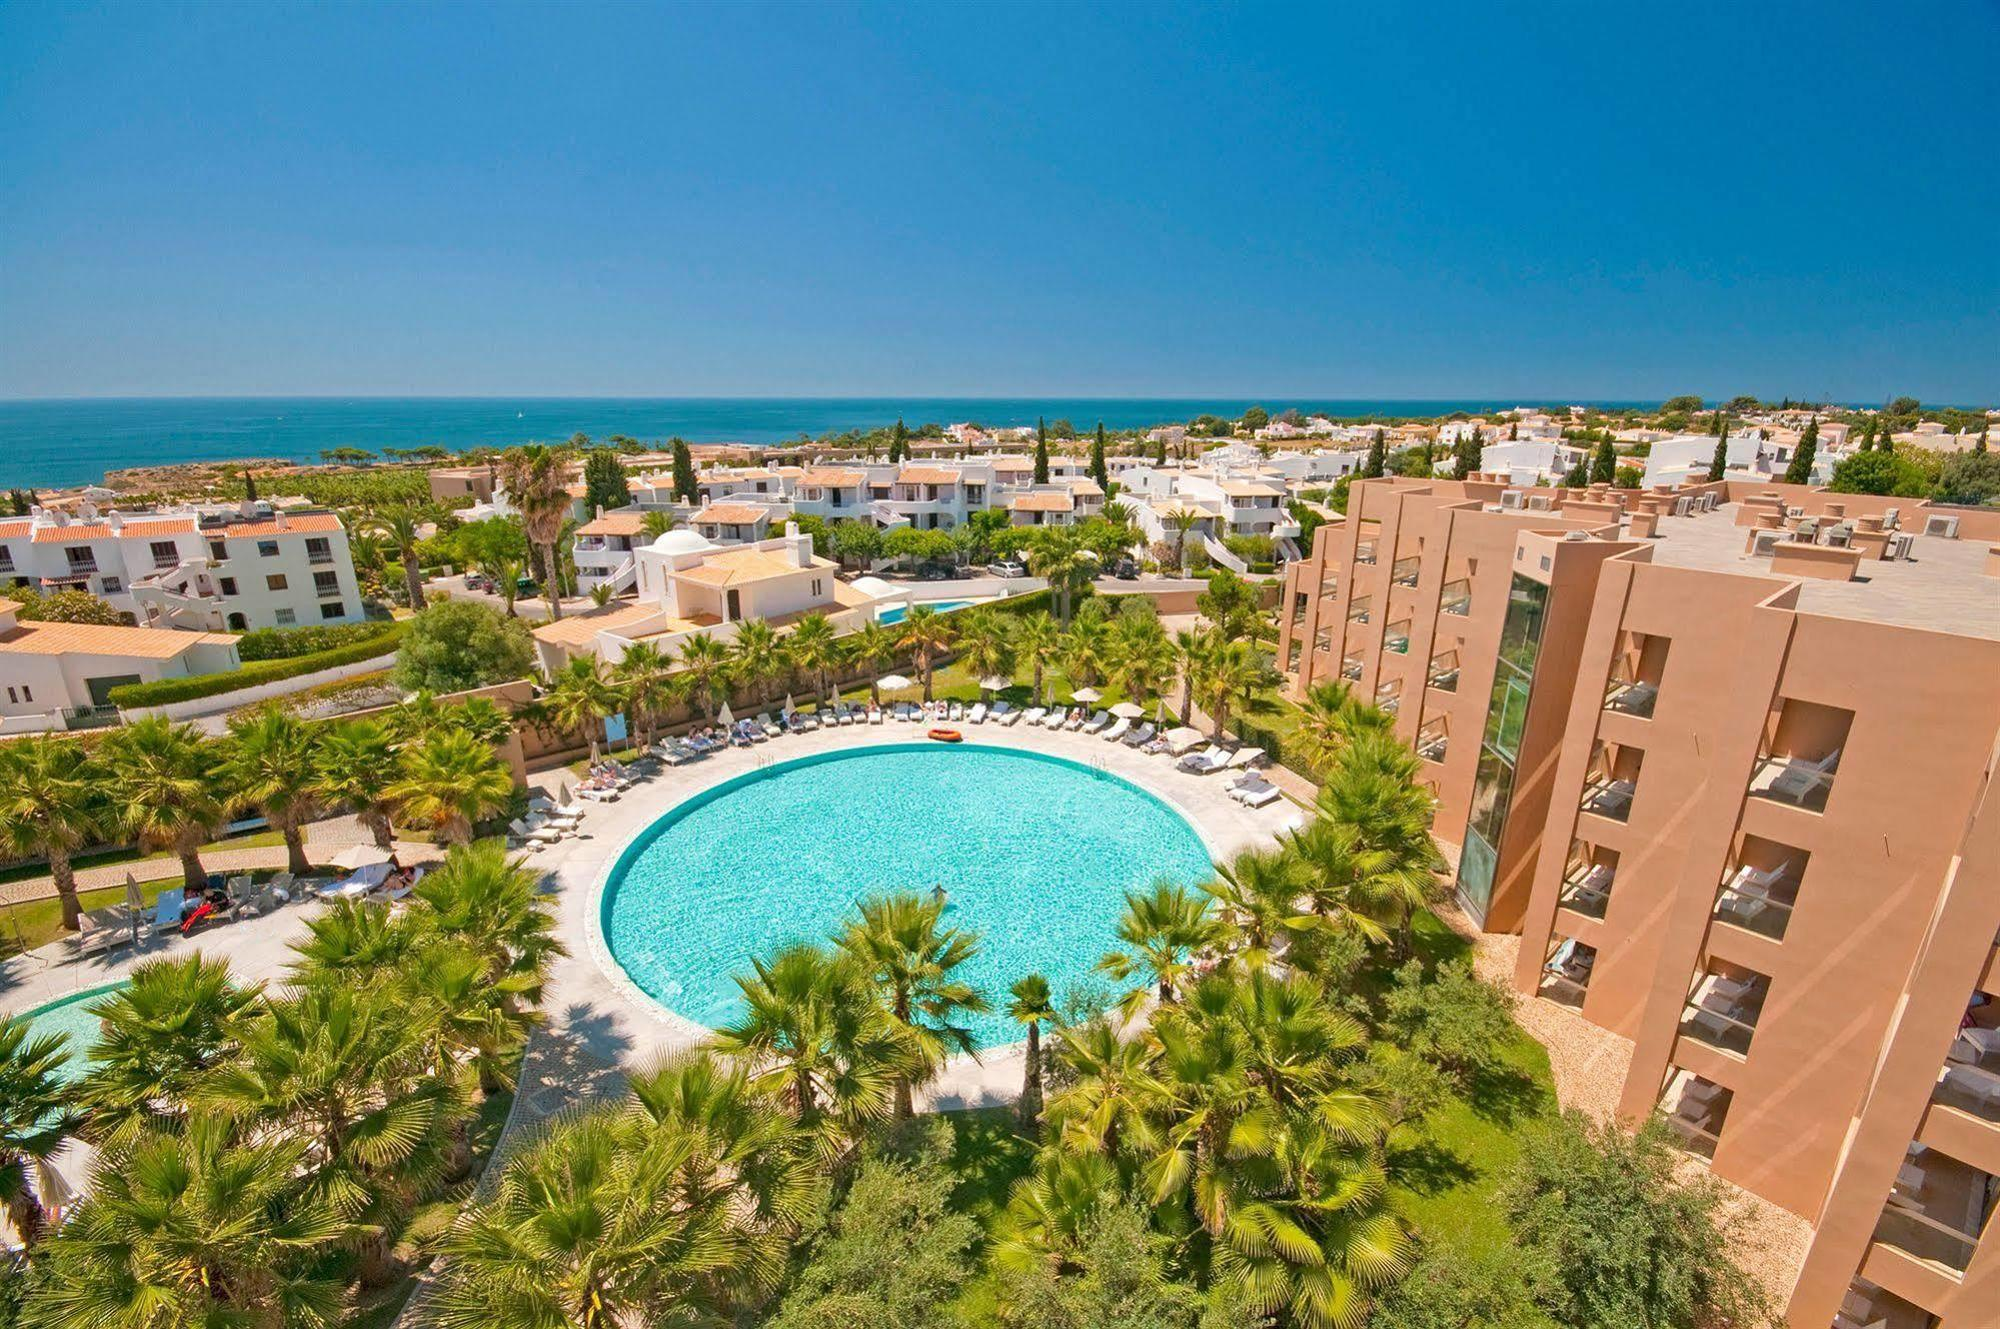 Hotel Tivoli Carvoeiro Algarve Booking Sao Rafael Suites Hotel Book A Golf Getaway In Algarve